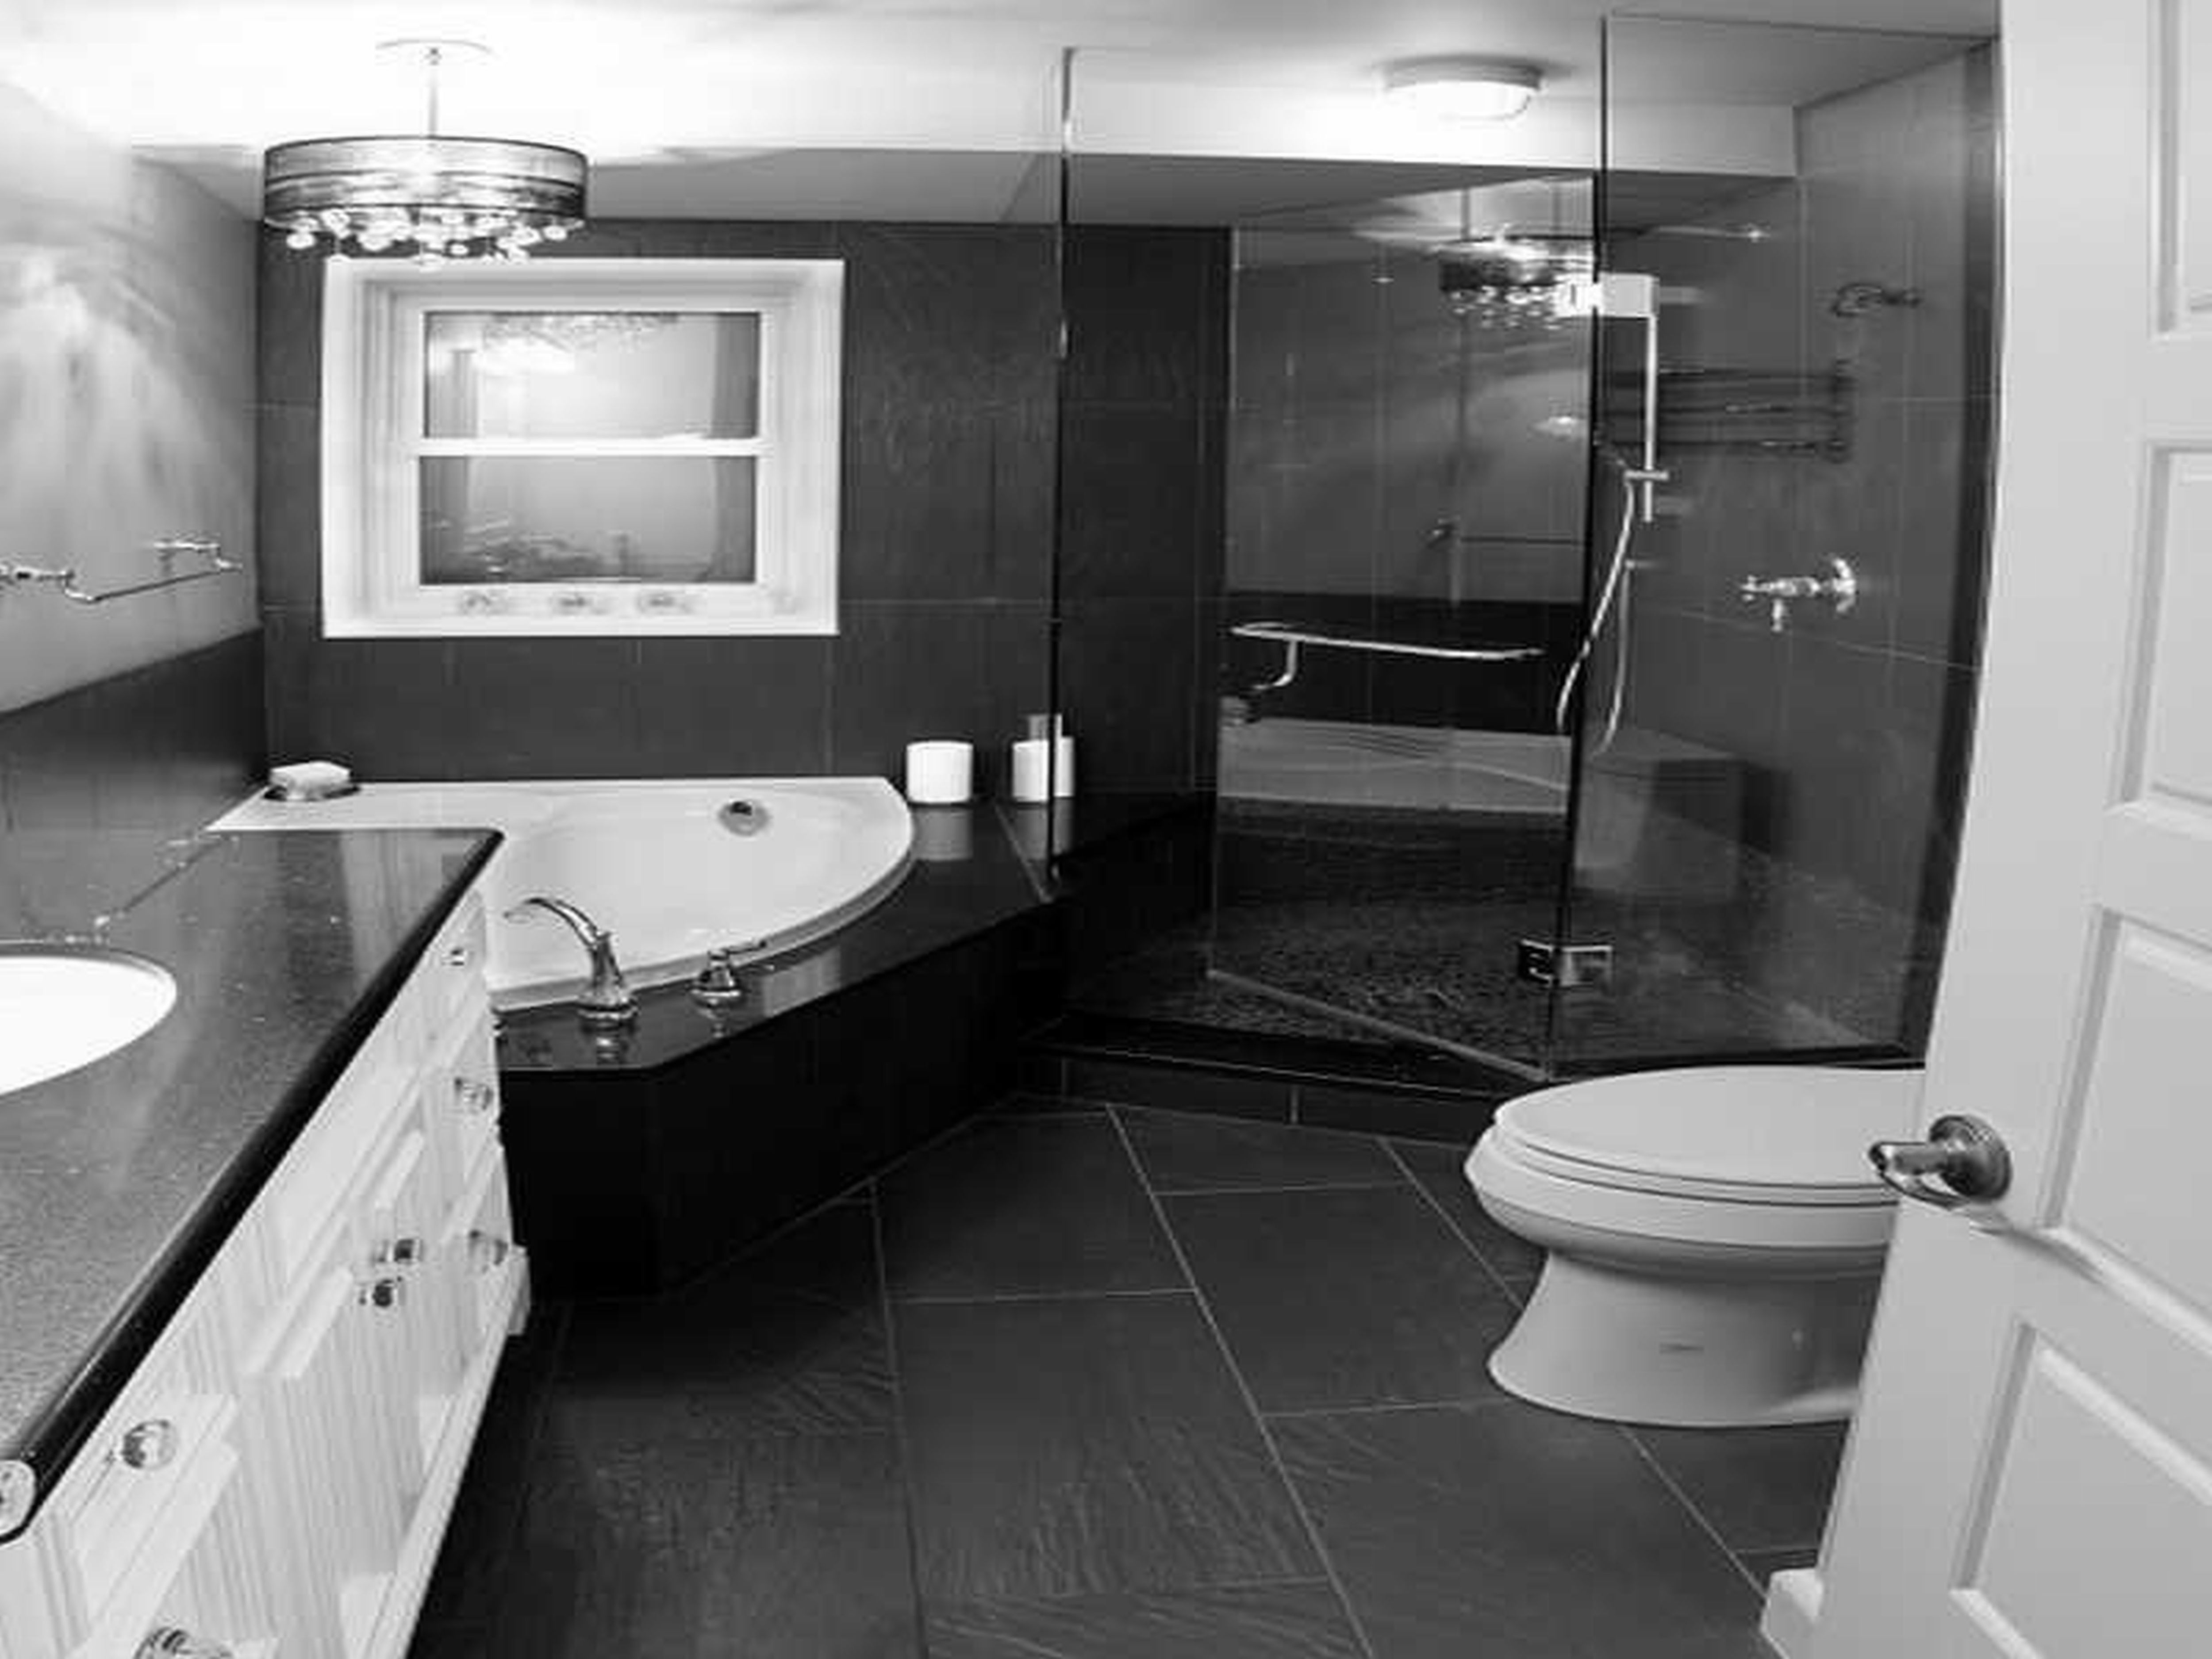 Merveilleux Inspiring Bathroom Designs In Black And White Color : Elegant Black And  White Mediterranean Style Bathroom With White Corner Quarter Circle Bathtub  And ...